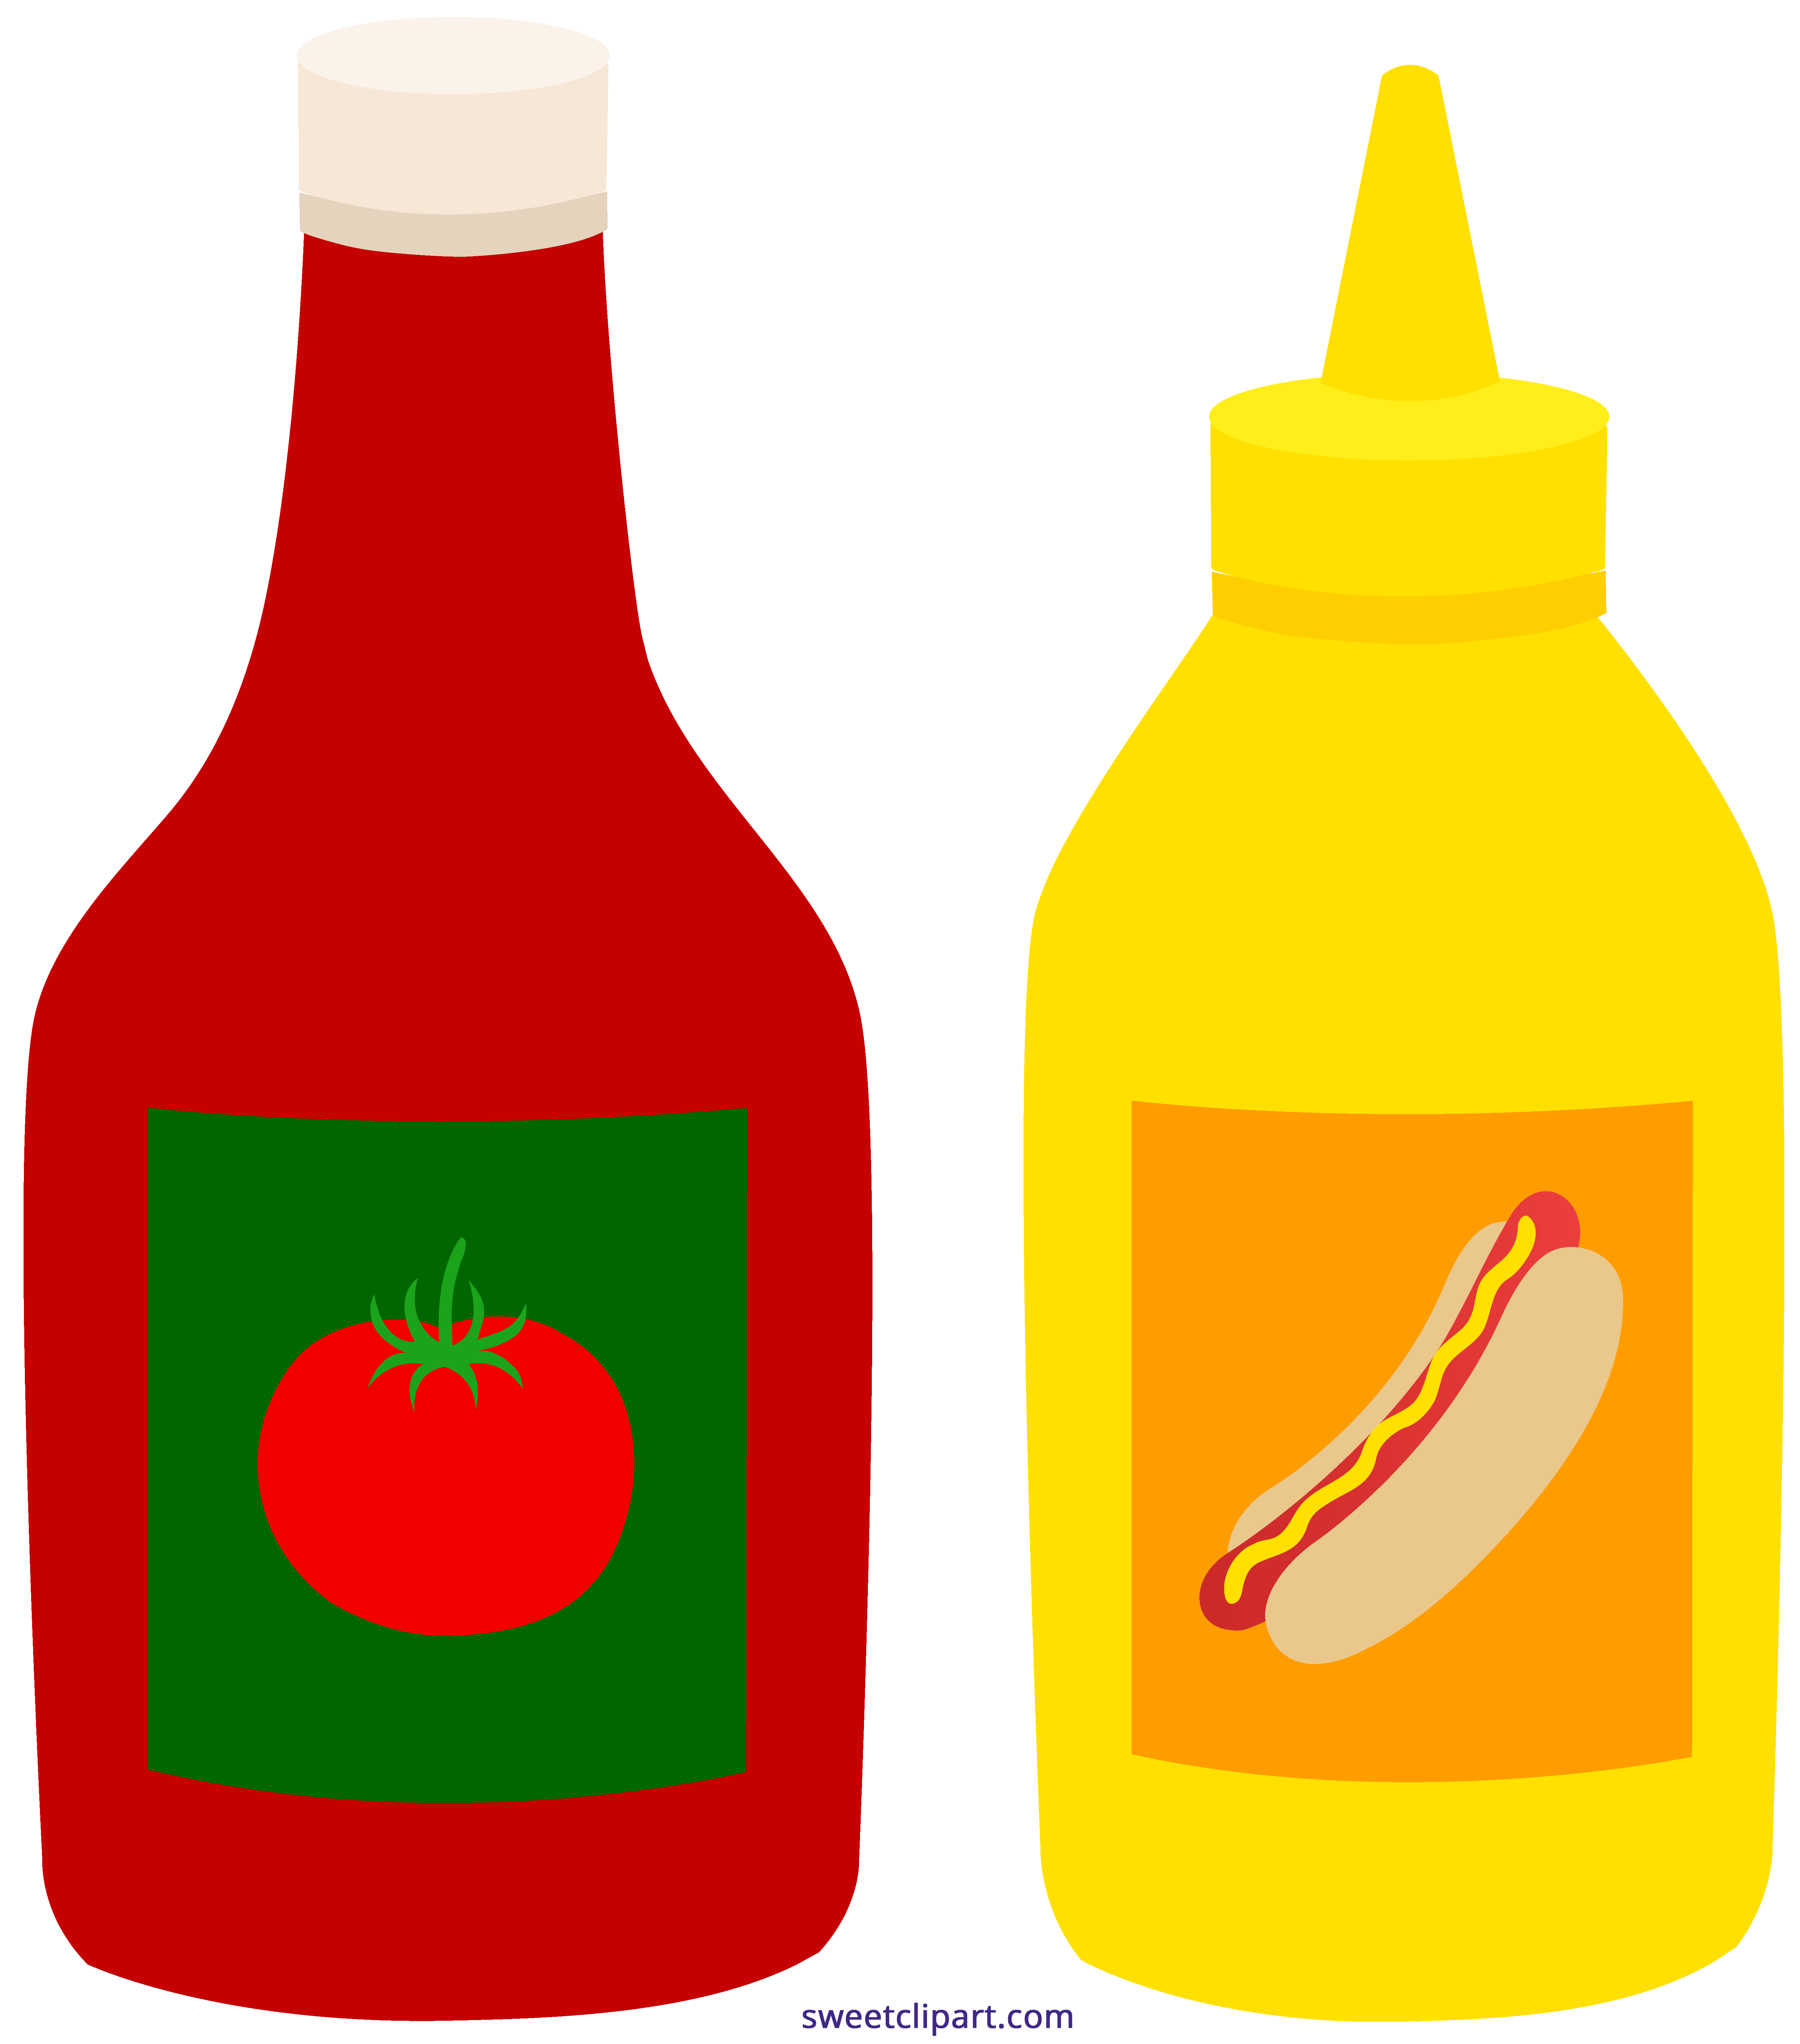 ketchup mustard bottles clipart sweet clip art rh m sweetclipart com ketchup bottle clipart black and white tomato ketchup clipart